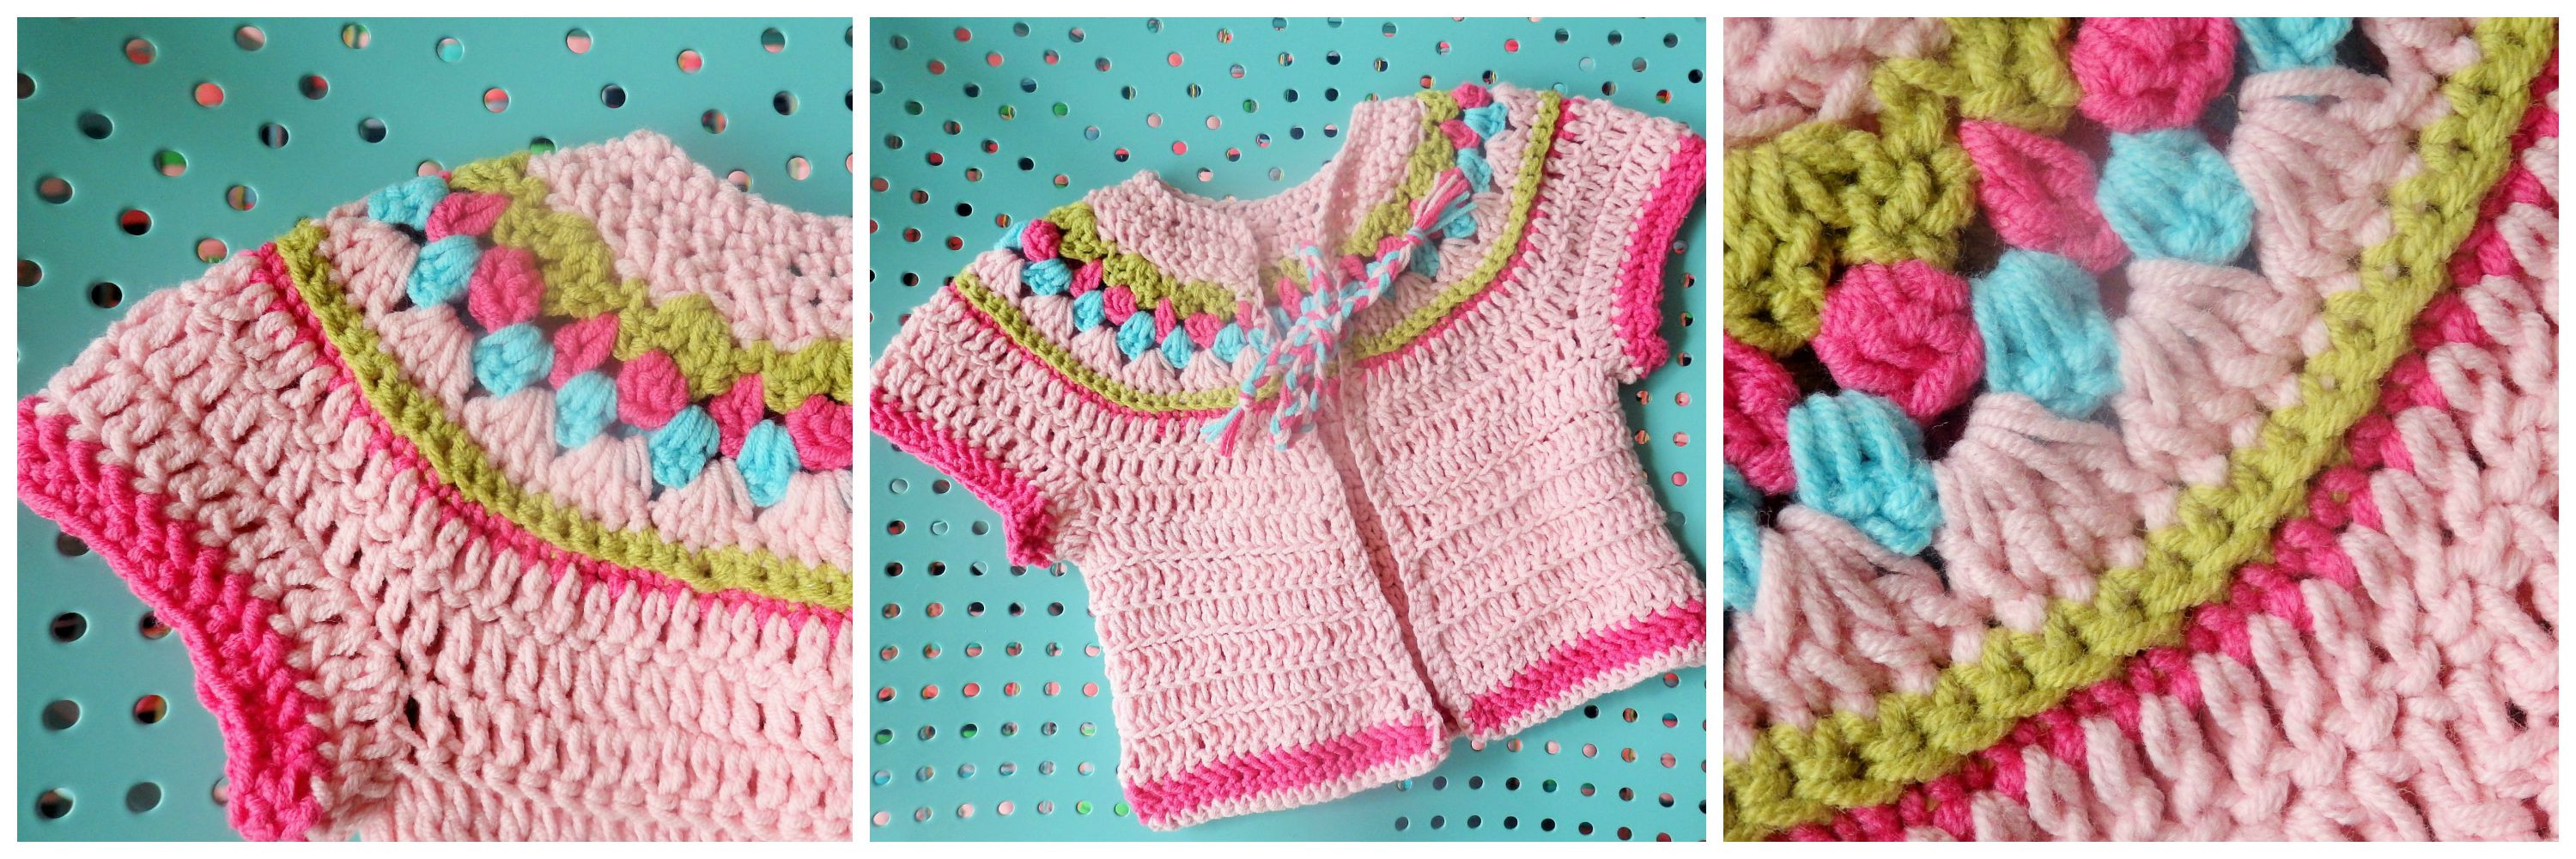 Crochet Baby Cardigan Luxury Crochet Baby Cardigan Of Amazing 49 Pics Crochet Baby Cardigan